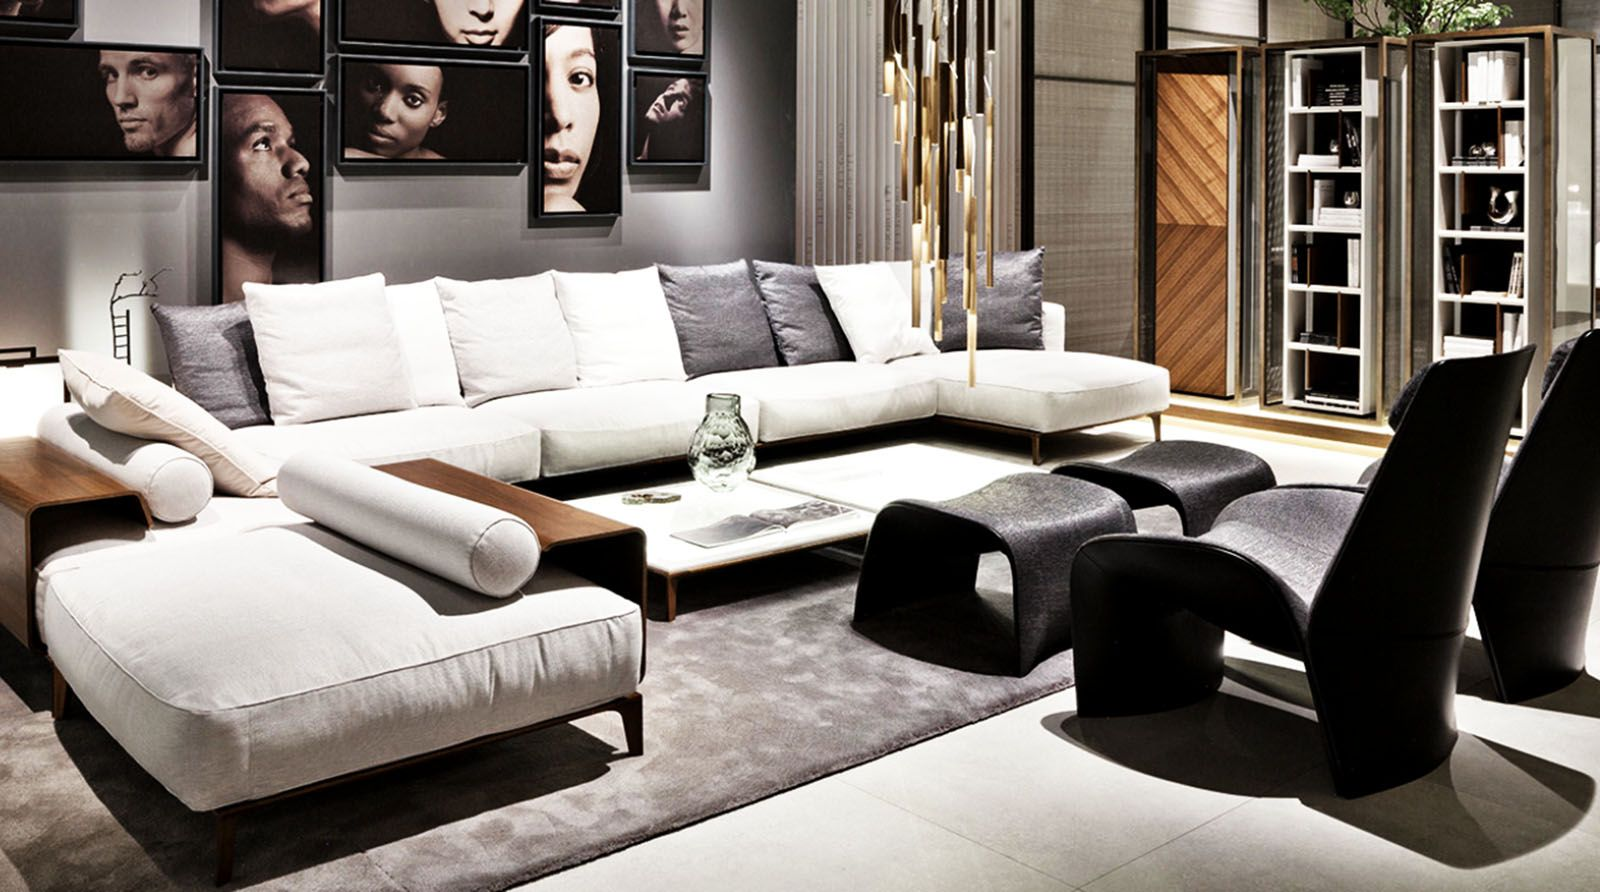 Contemporary living room, Home, Luxury interior